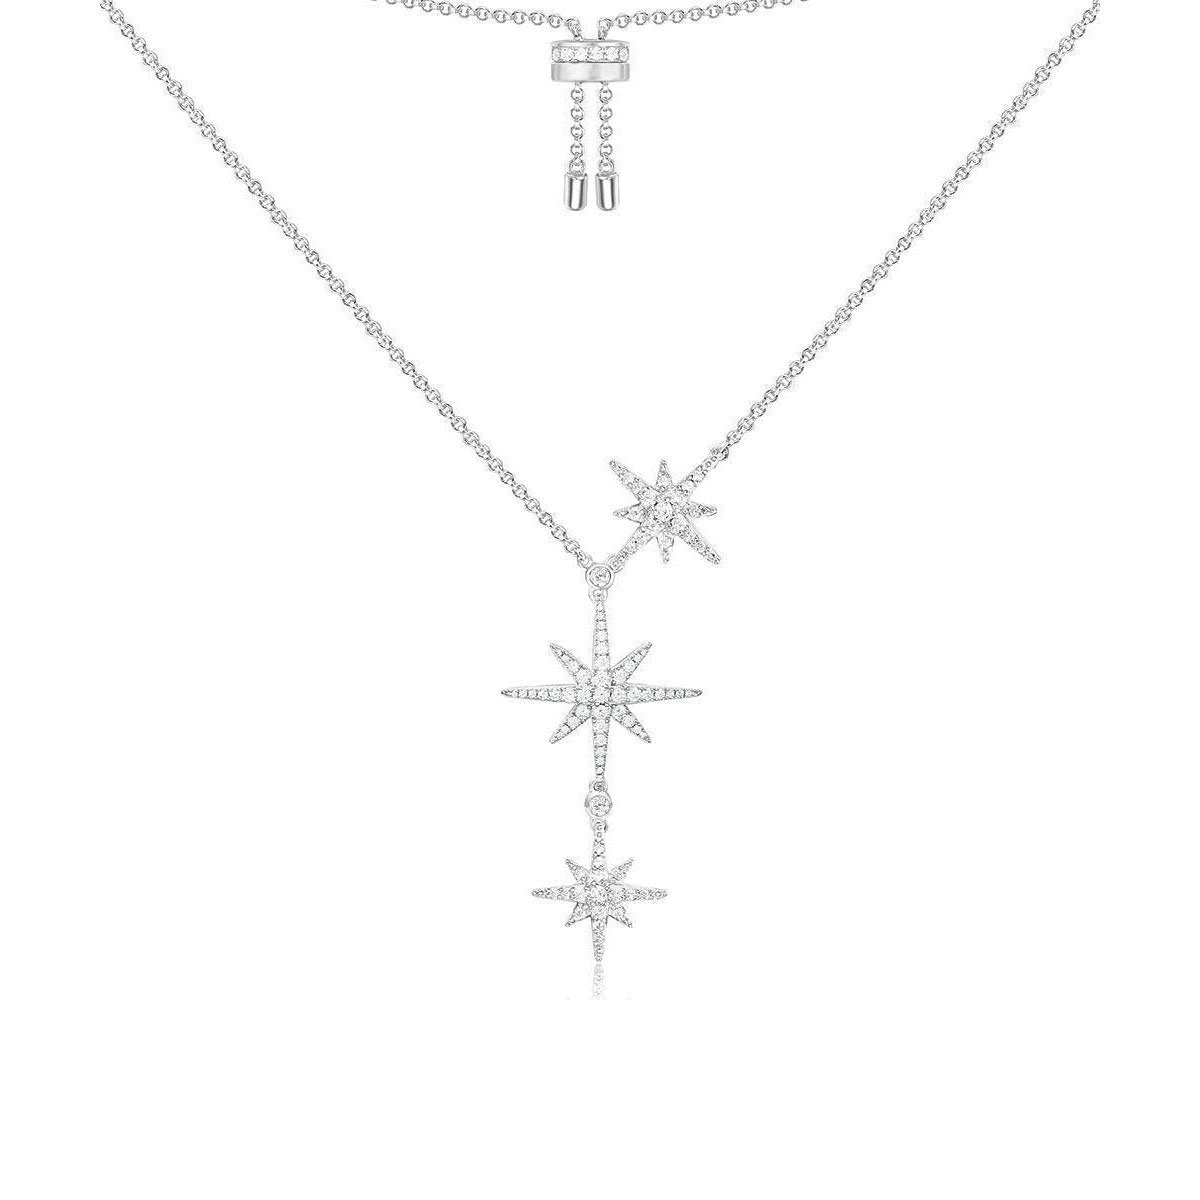 Necklace N1326 - 925 Sterling Silver